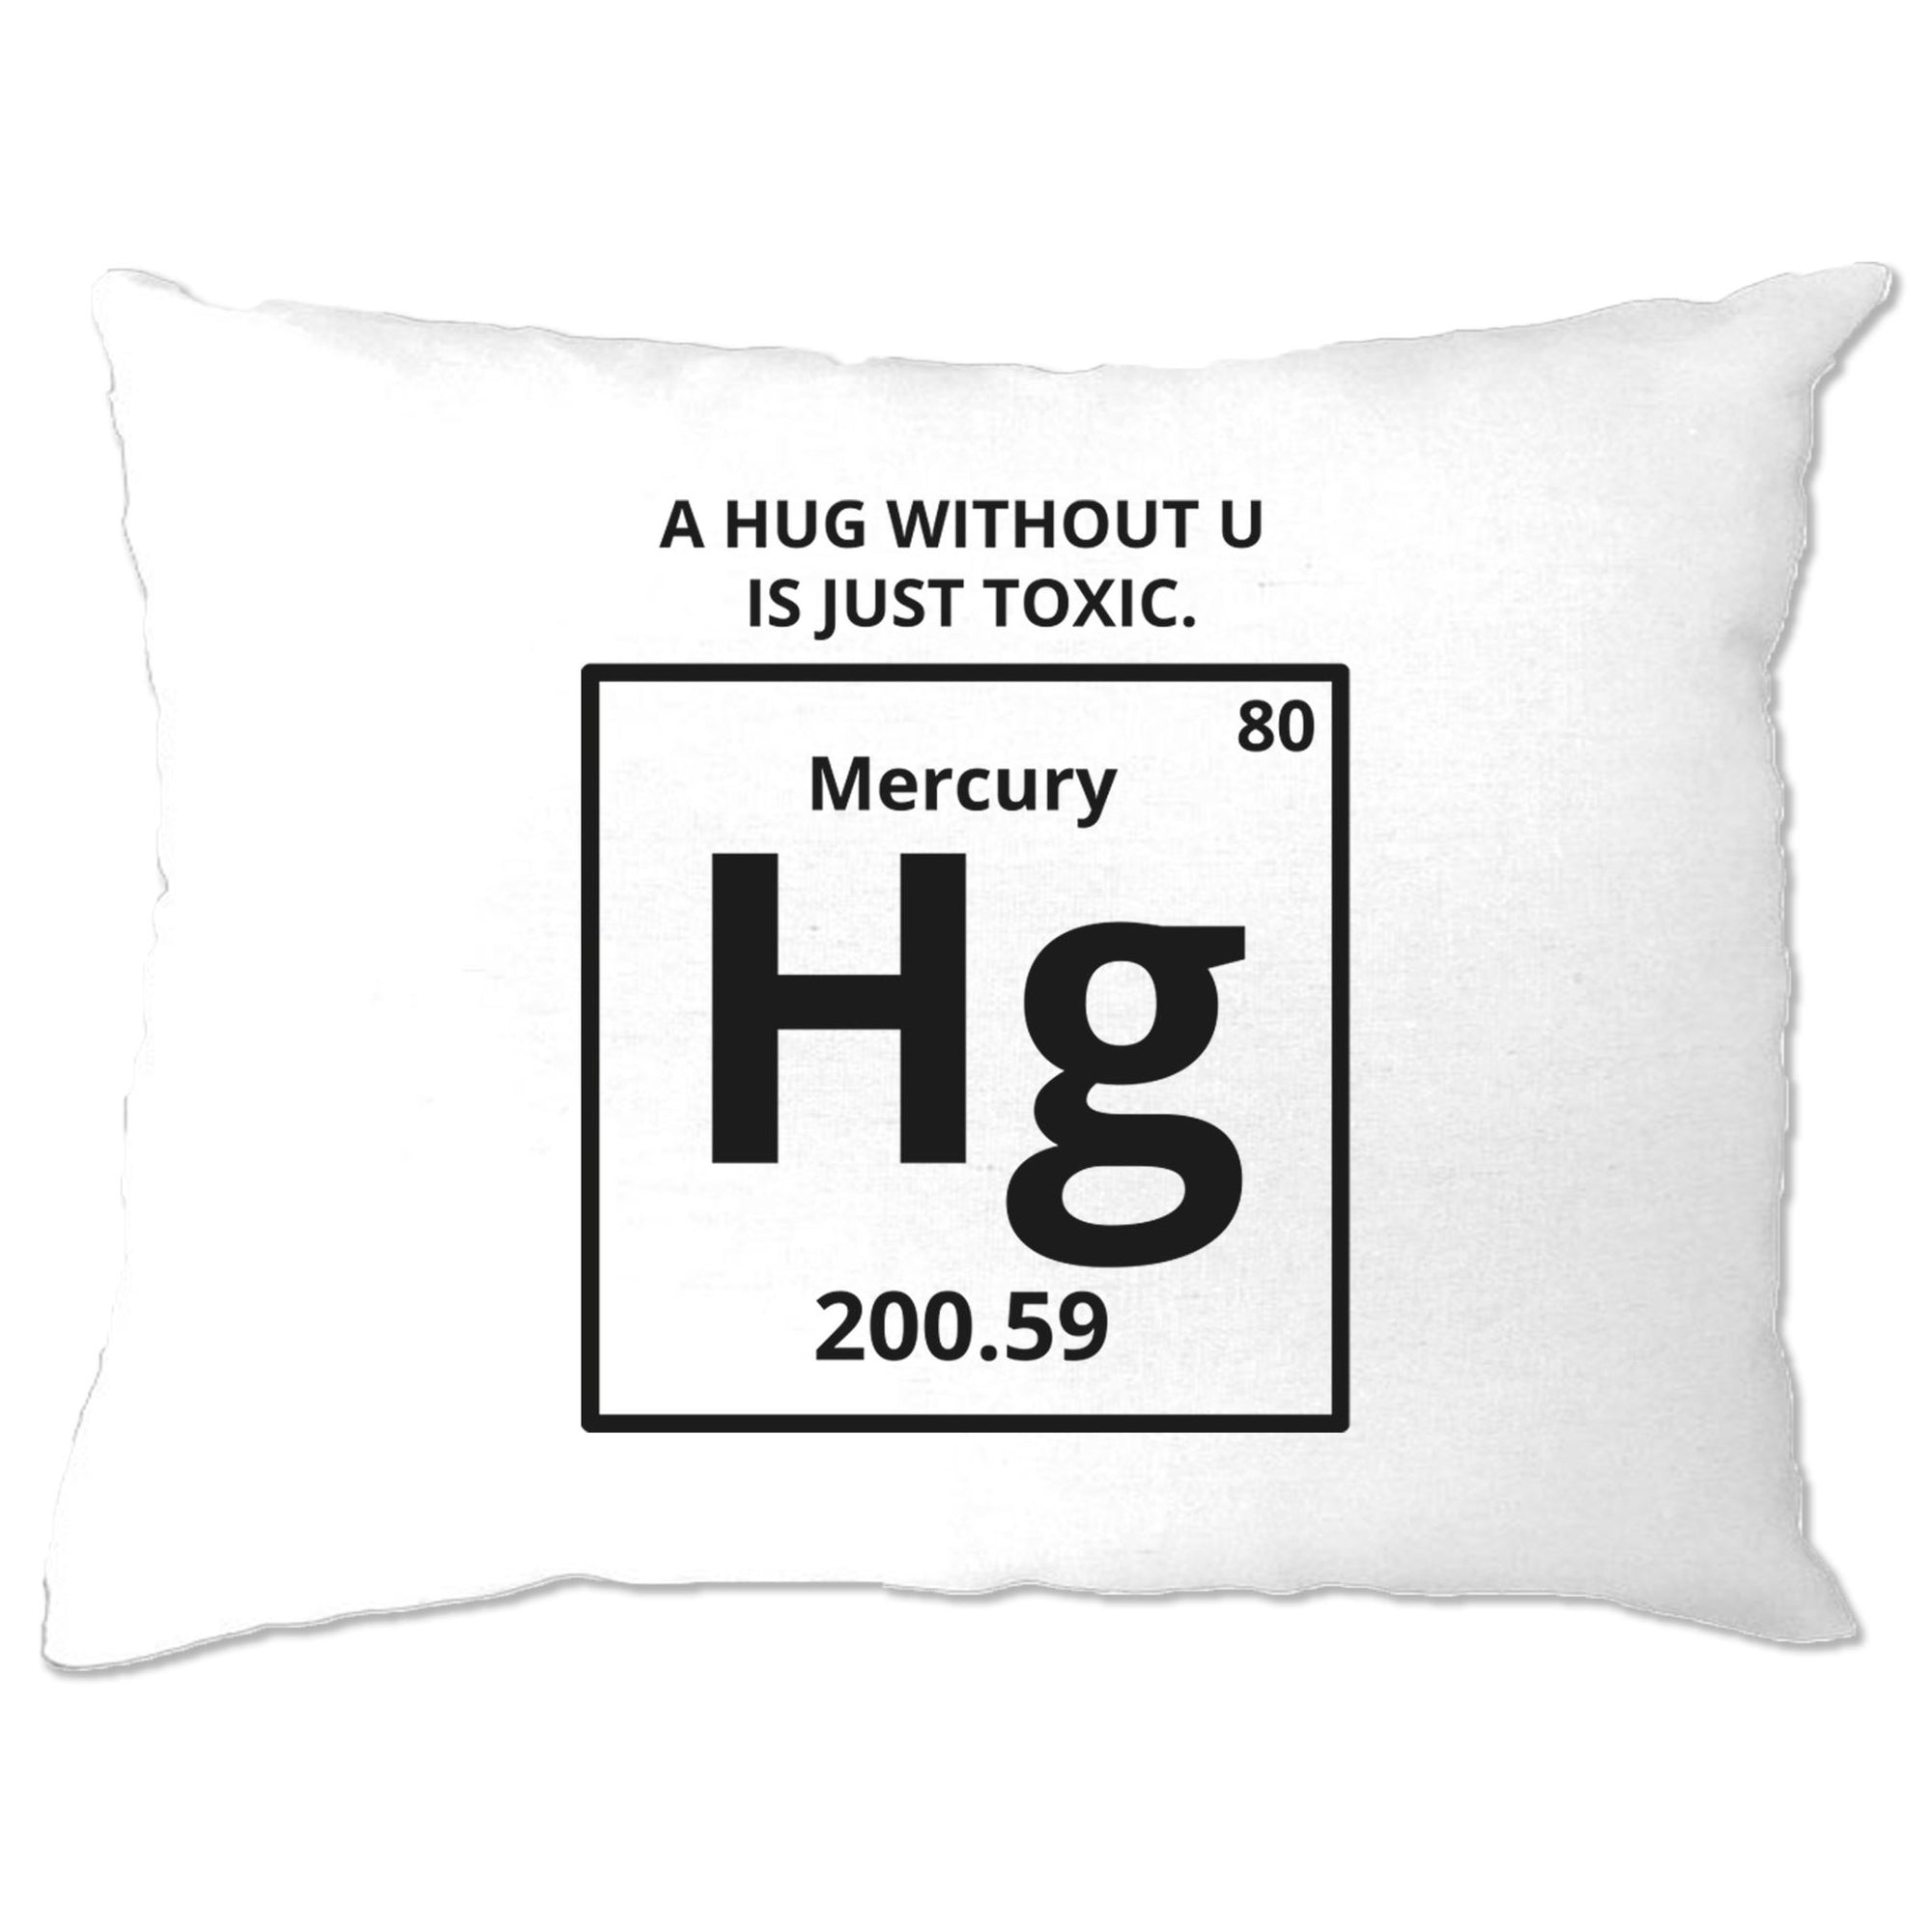 Funny Science Pillow Case Mercury Hug Chemistry Joke